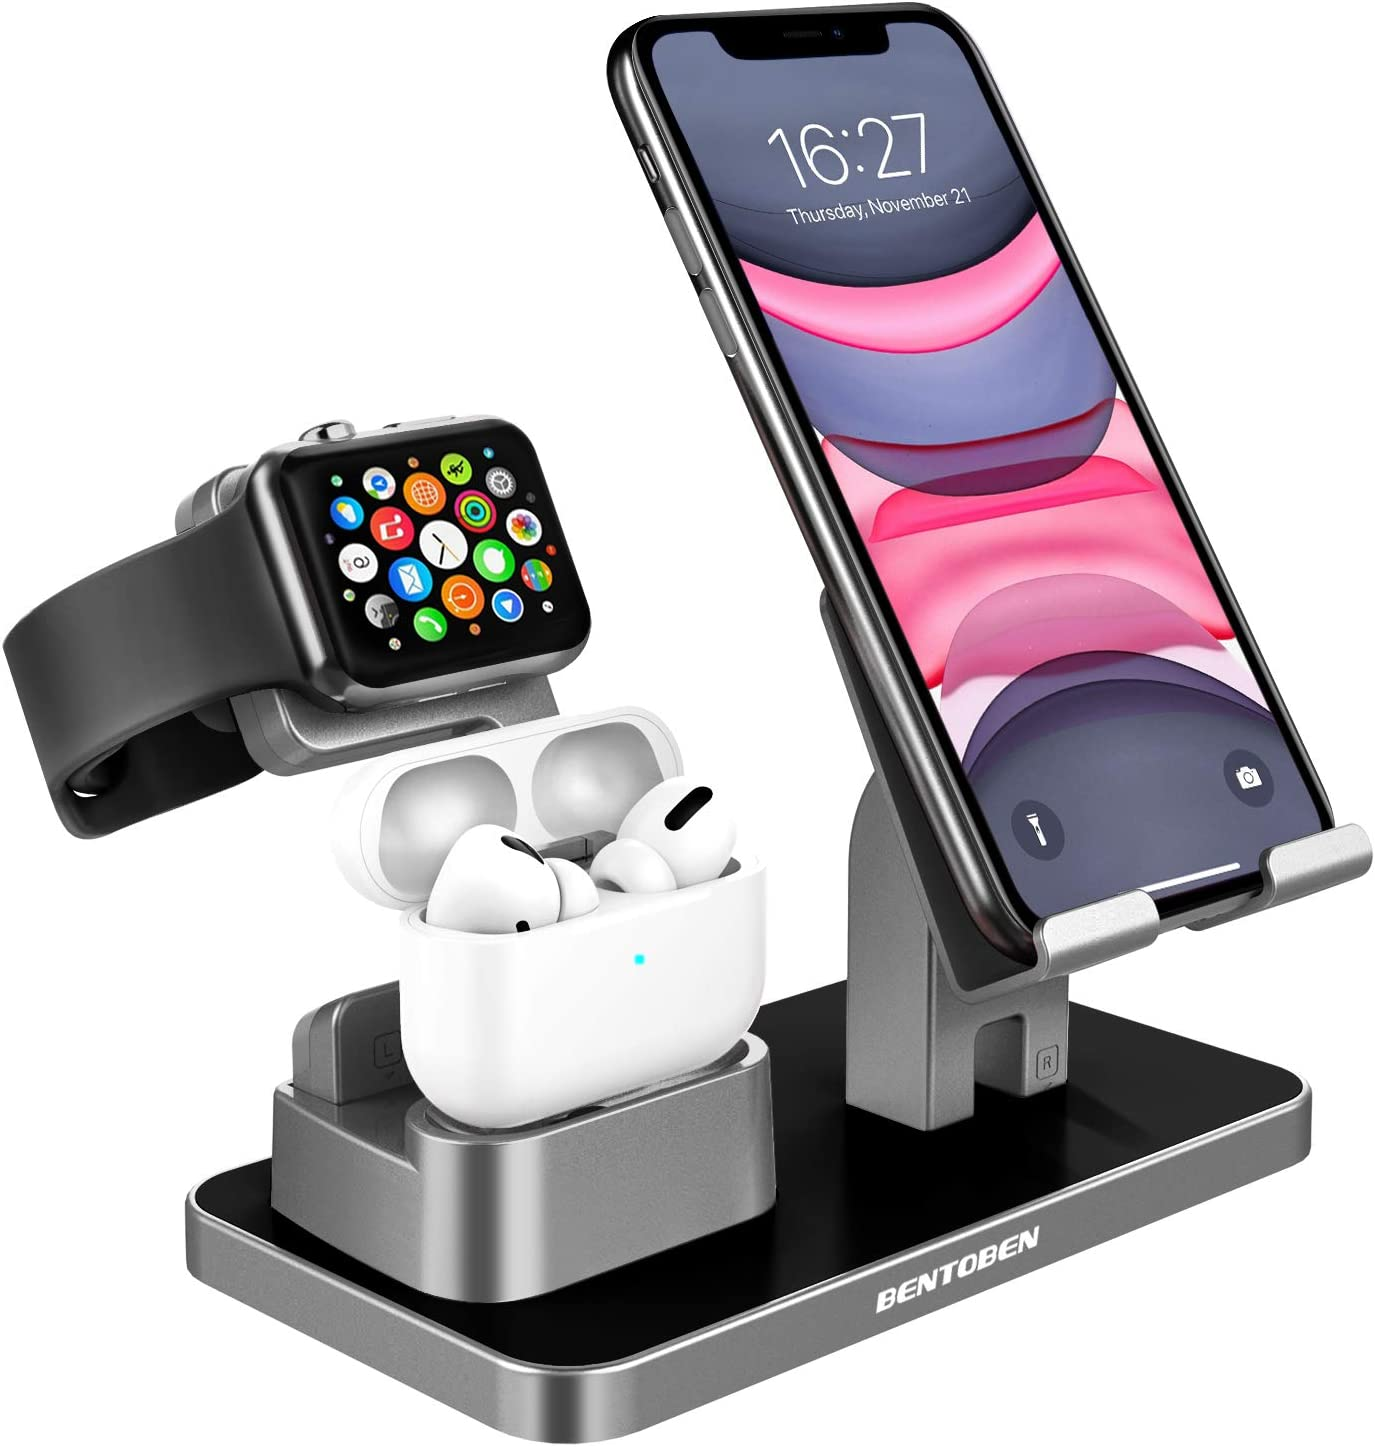 KANGYA 3 in 1 Charging Stand, Charging Dock Compatible with Airpods Pro 2/1 Apple Watch SE/6/5/4/3/2 iPhone 12 11 SE 2020 Xs Max XR X 8 7 6S 6 Plus 5S 5 Android Smartphone iPad Tablet, Space Gray